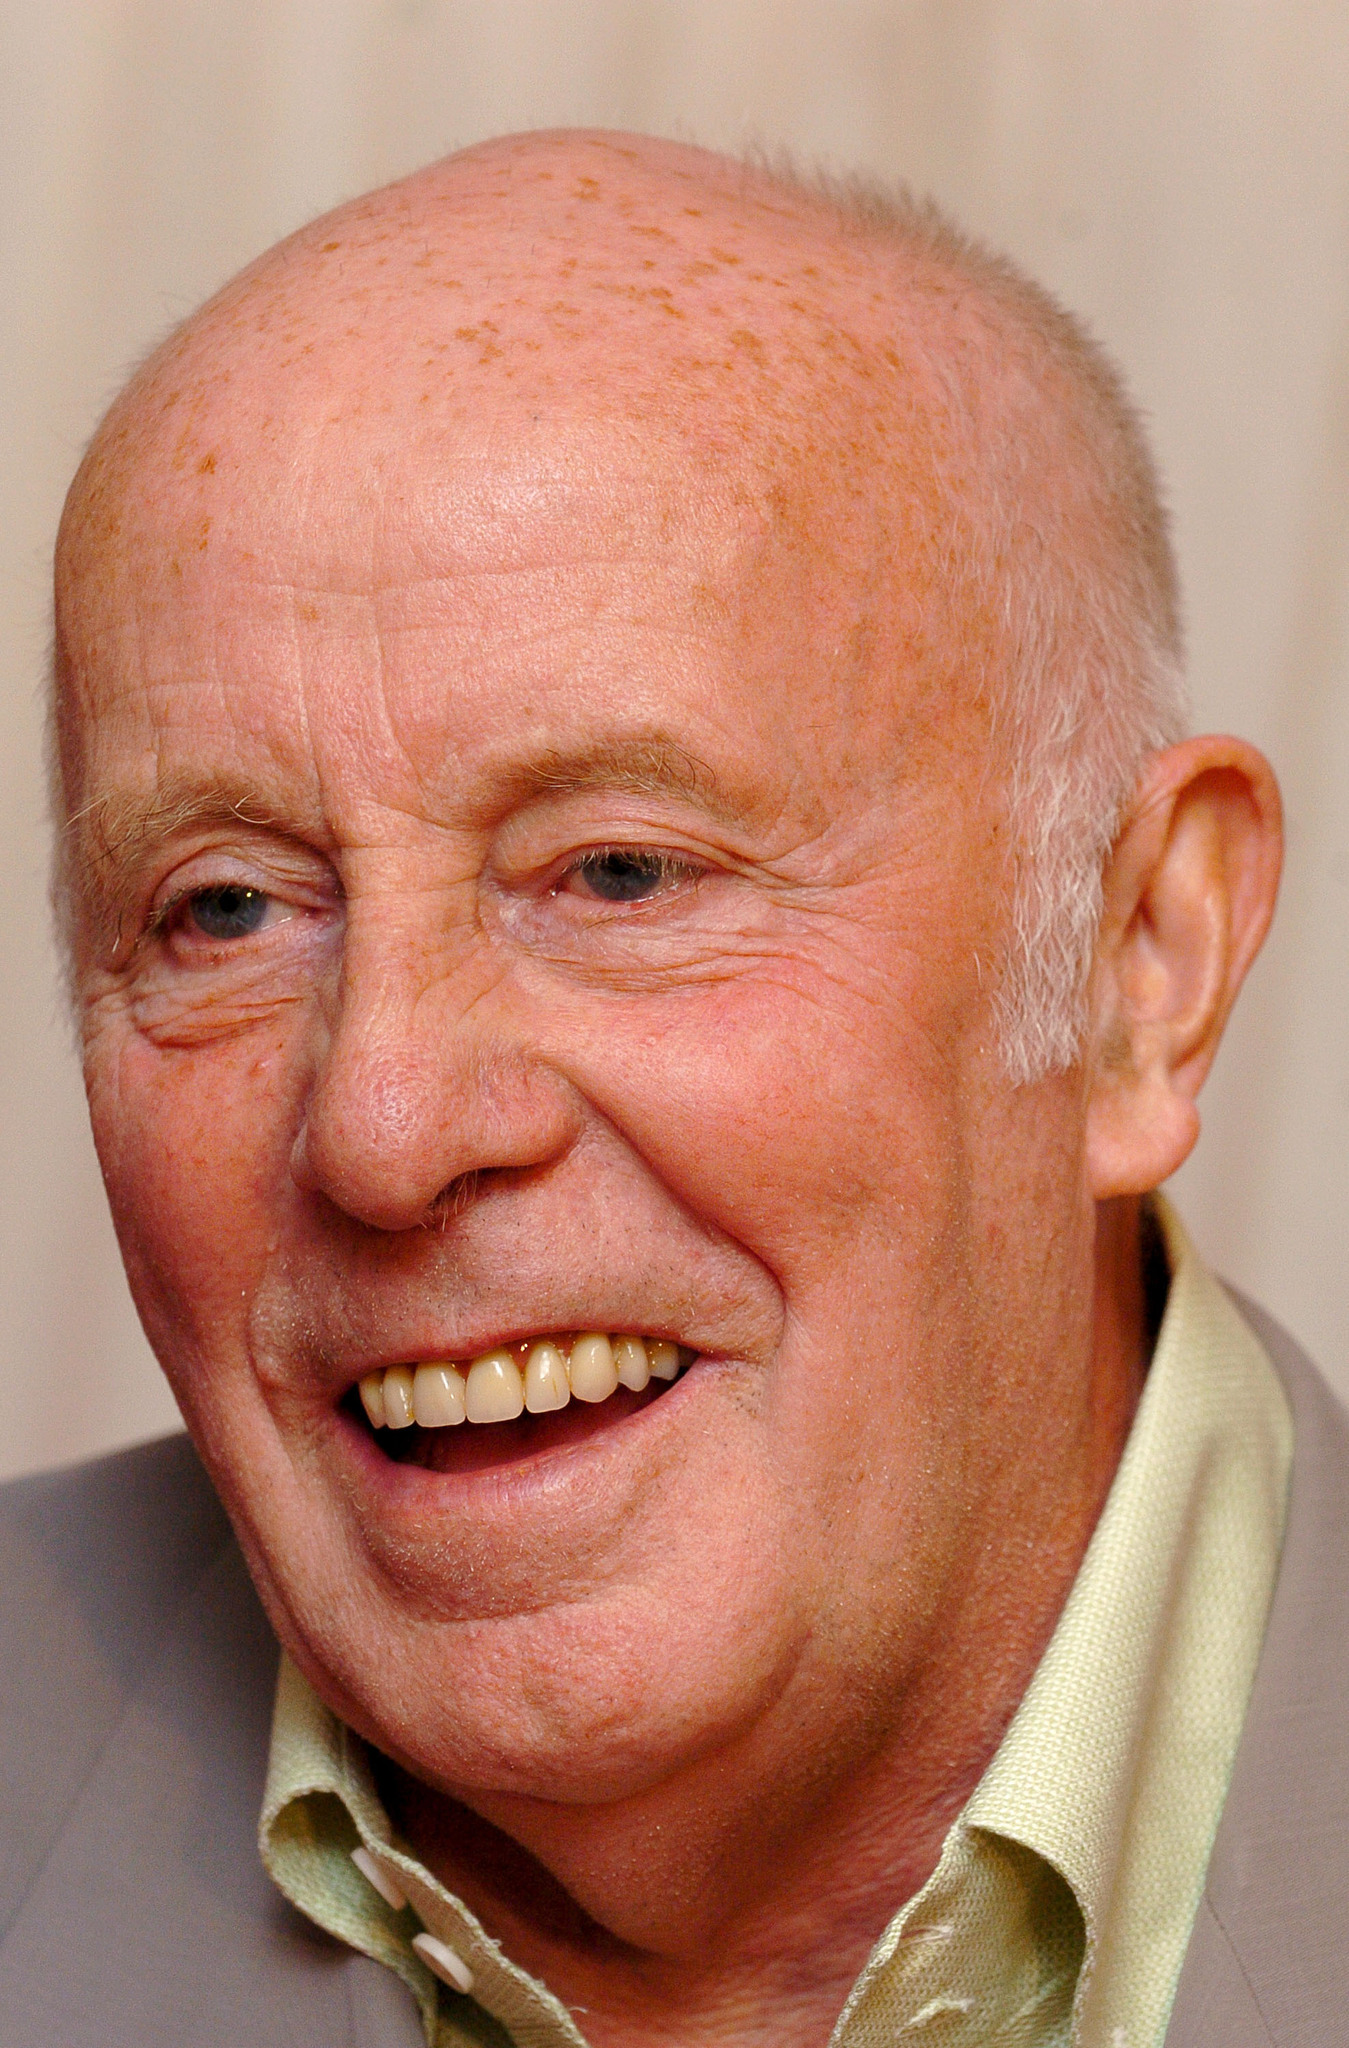 Richard Wilson is an actor and his work